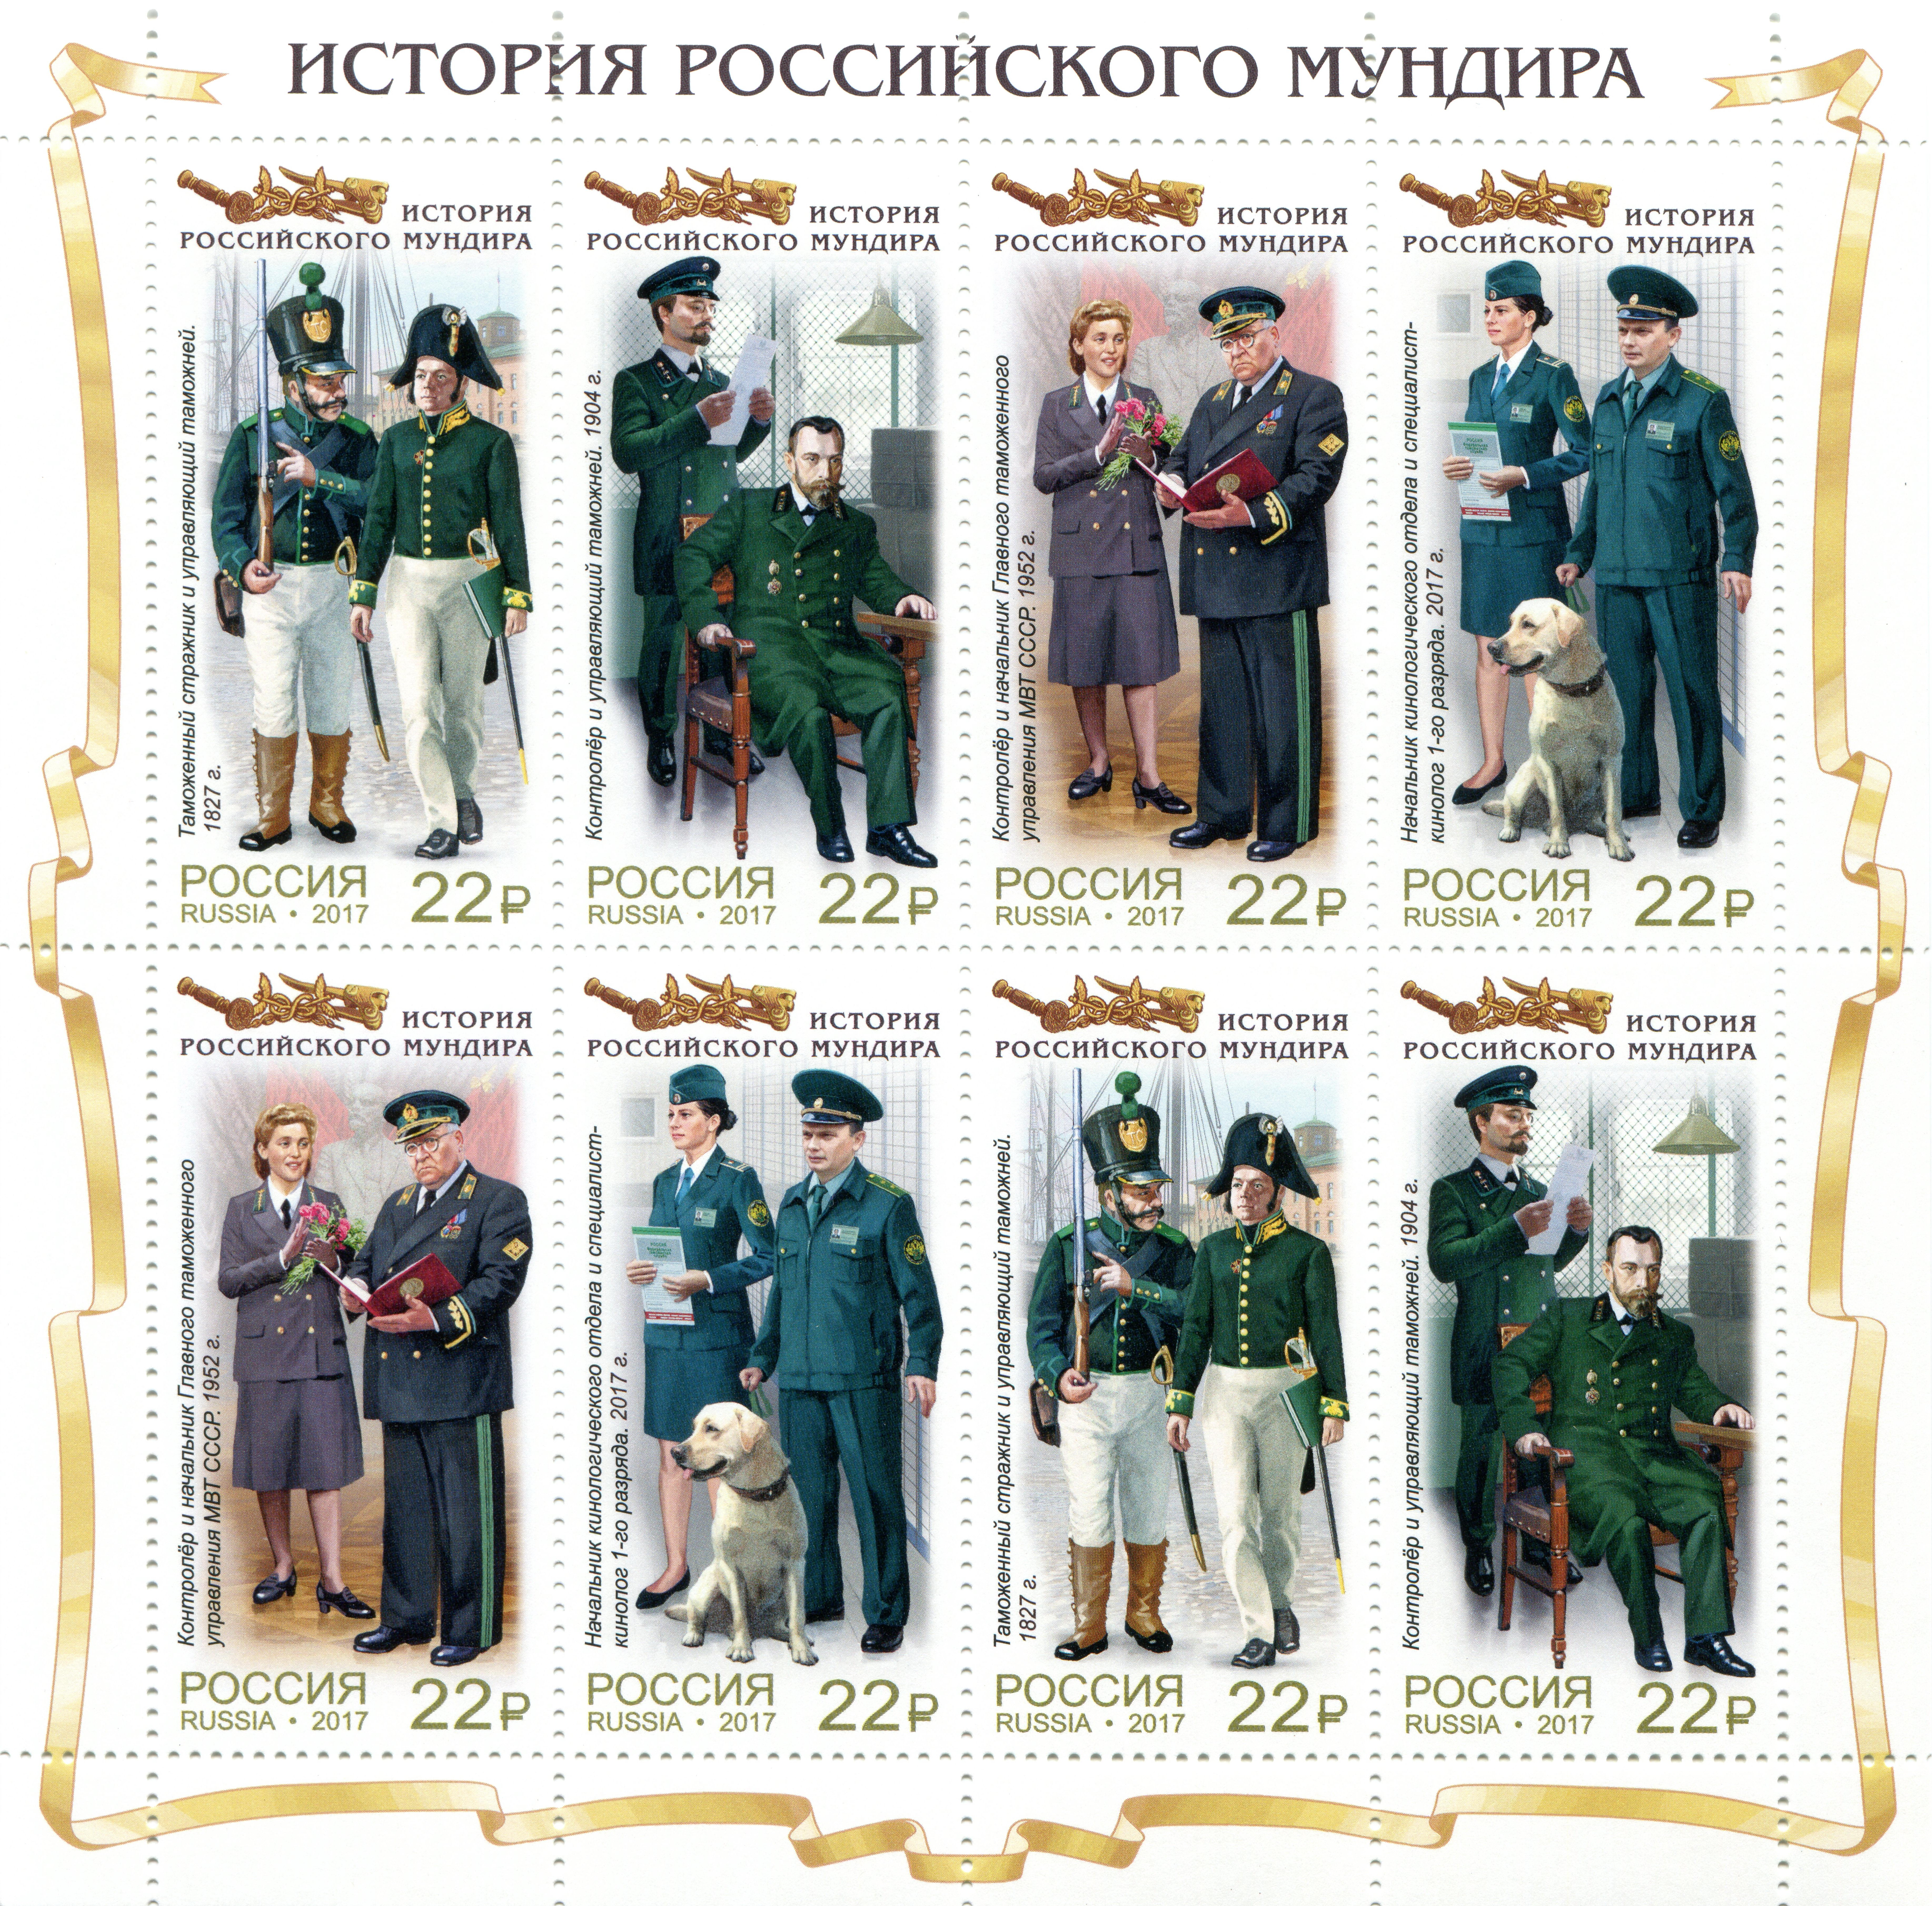 Photo Postage Stamp The History Of The Russian Uniform 7339x7241